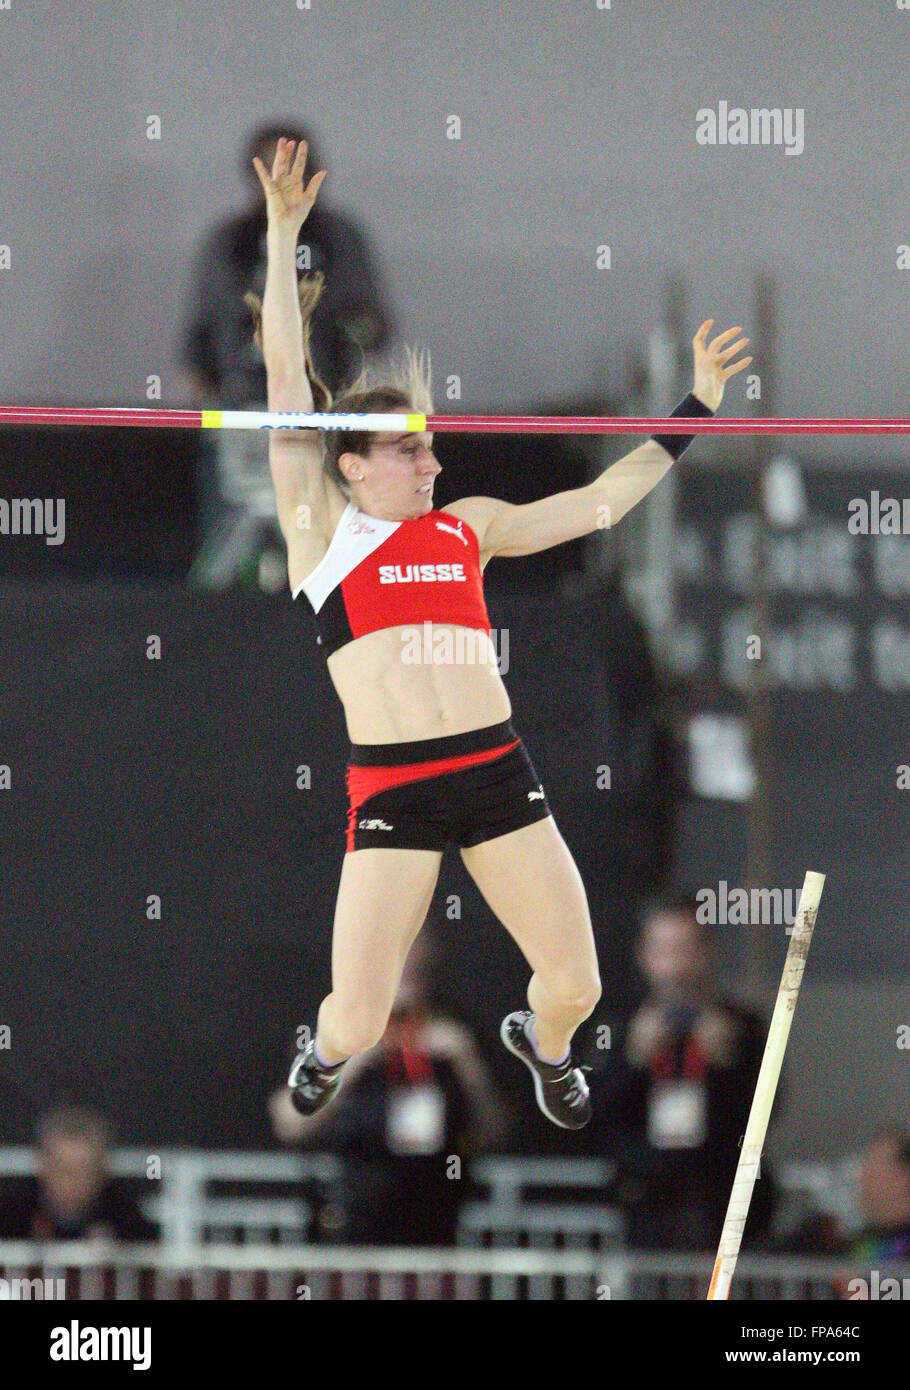 March 17, 2016: Nicole Bchler sets a Swiss National indoor record in the Women's pole vault at the 2016 World - Stock Image